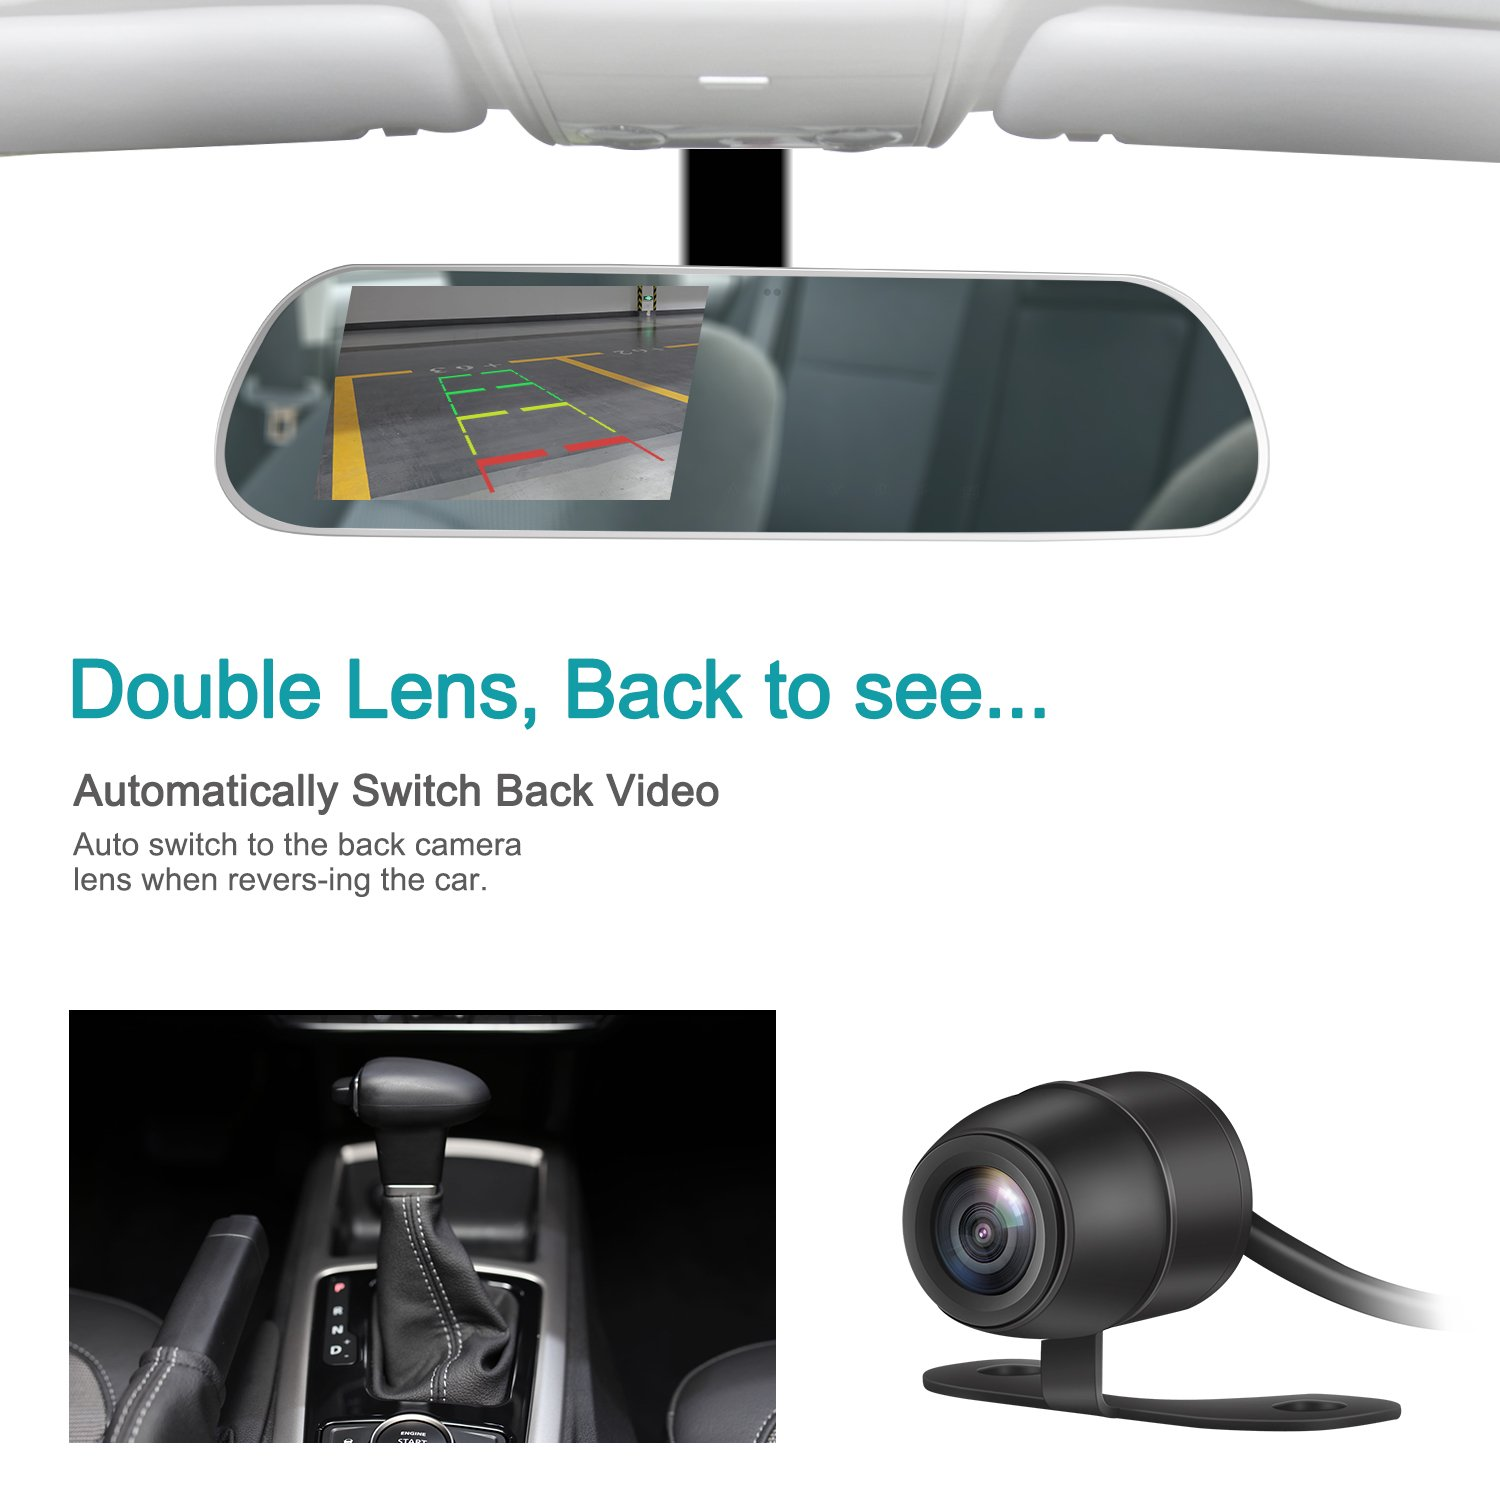 TryAce T9P Dual Dash Cam,FHD 1080P Rearview Mirror Backup Camera 4 IPS Screen with G-Sensor,WDR,Loop Recording Super Nights Vison Rear View Reverse Front and Rear Car Dash Camera camera video recorder T9P